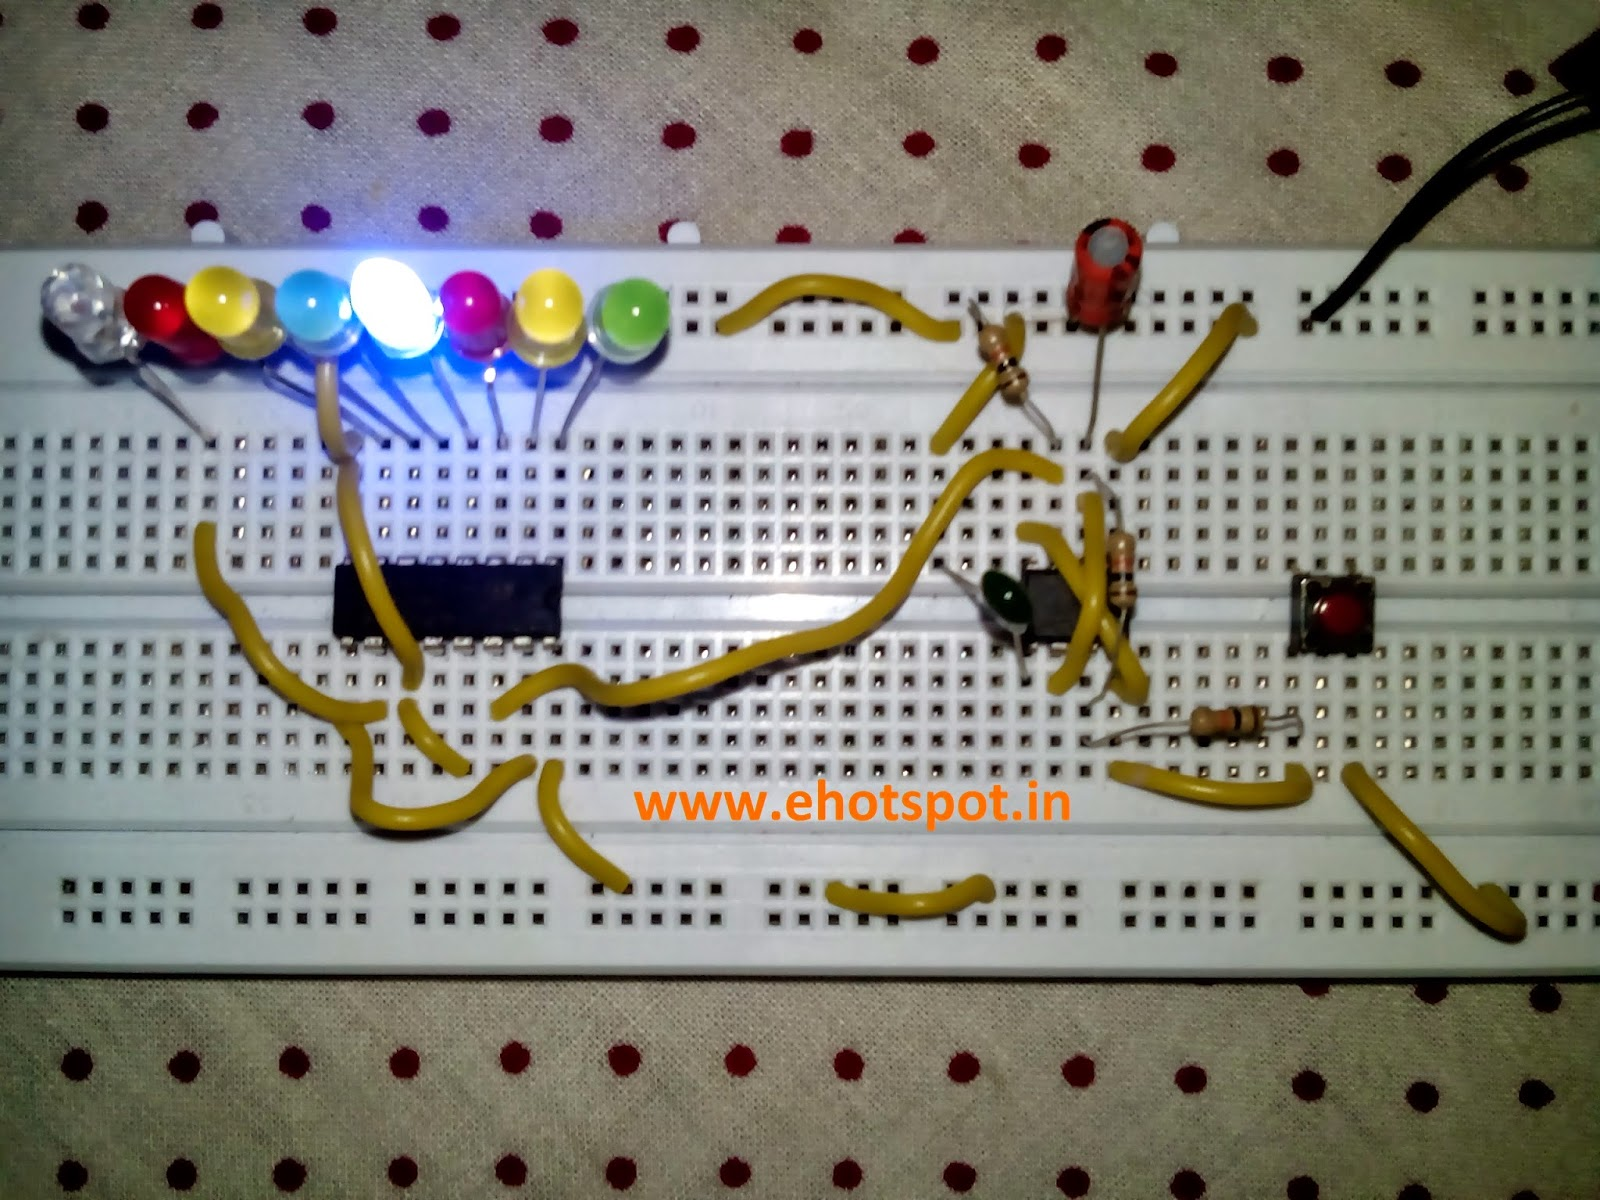 Electronics Hotspot Everything About Digit 7 Segment Display Arduino Also Circuit 4026 The Value Of Capacitor On Pin 2 555 Can Be Changed To Higher 10uf Decrease Speed Sequential Led Flashing When Push Button Is